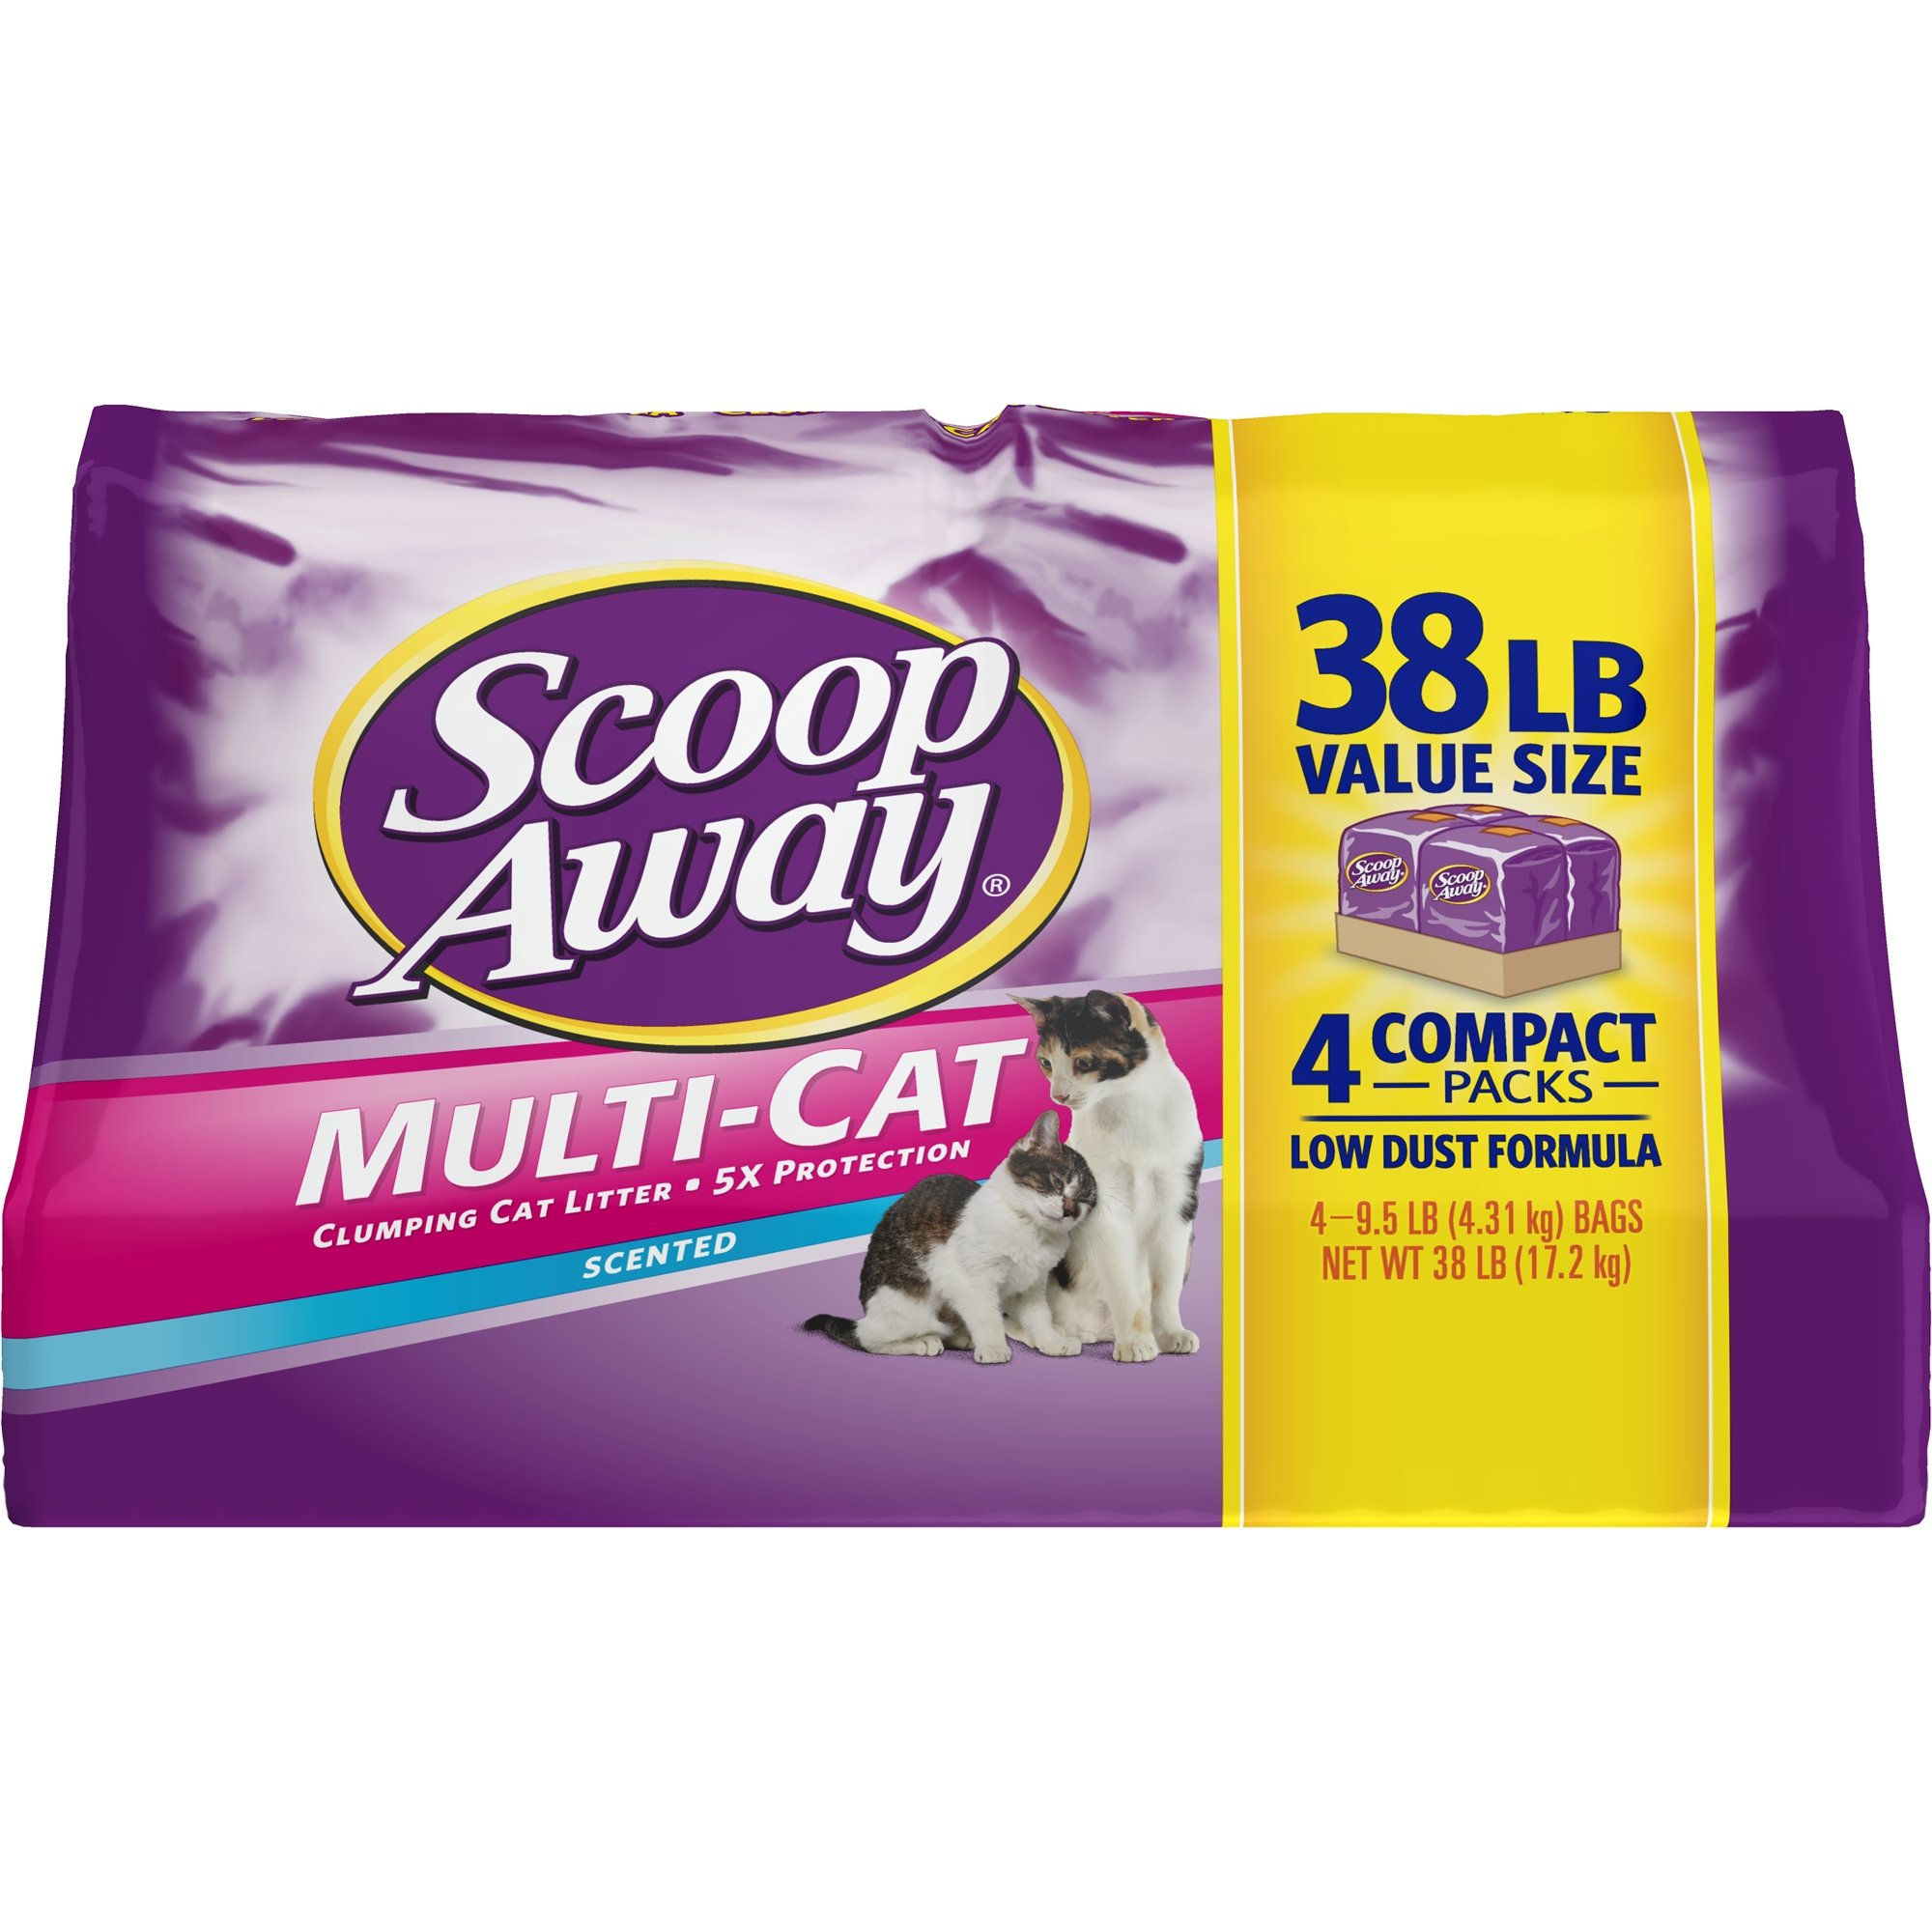 Scoop Away Multi-Cat, Scented Cat Litter, 38 Pounds (pack of 2) by Scoop Away